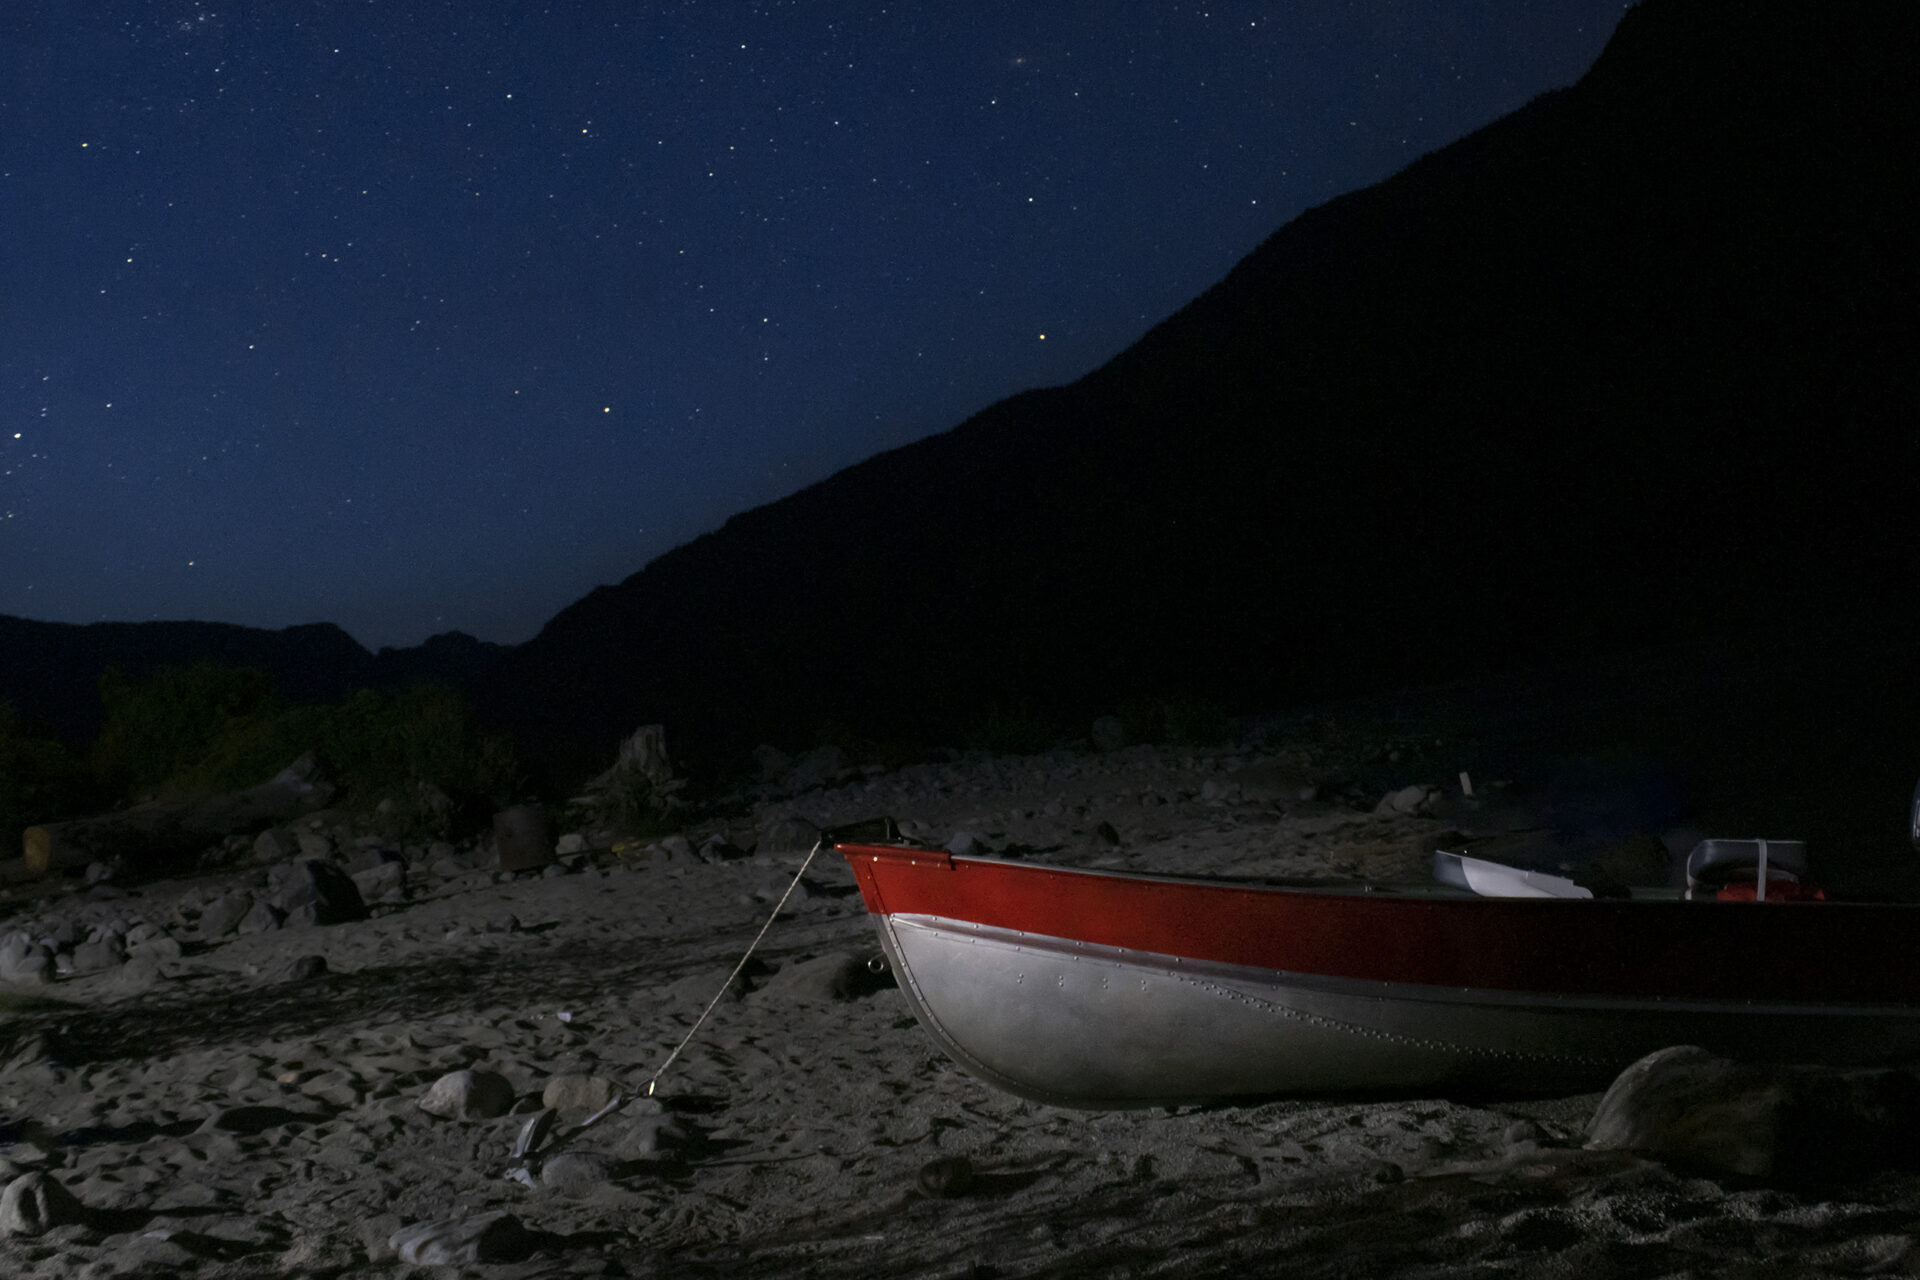 Night sky over Chehalis Lake Shore with boat, July 10, 2021